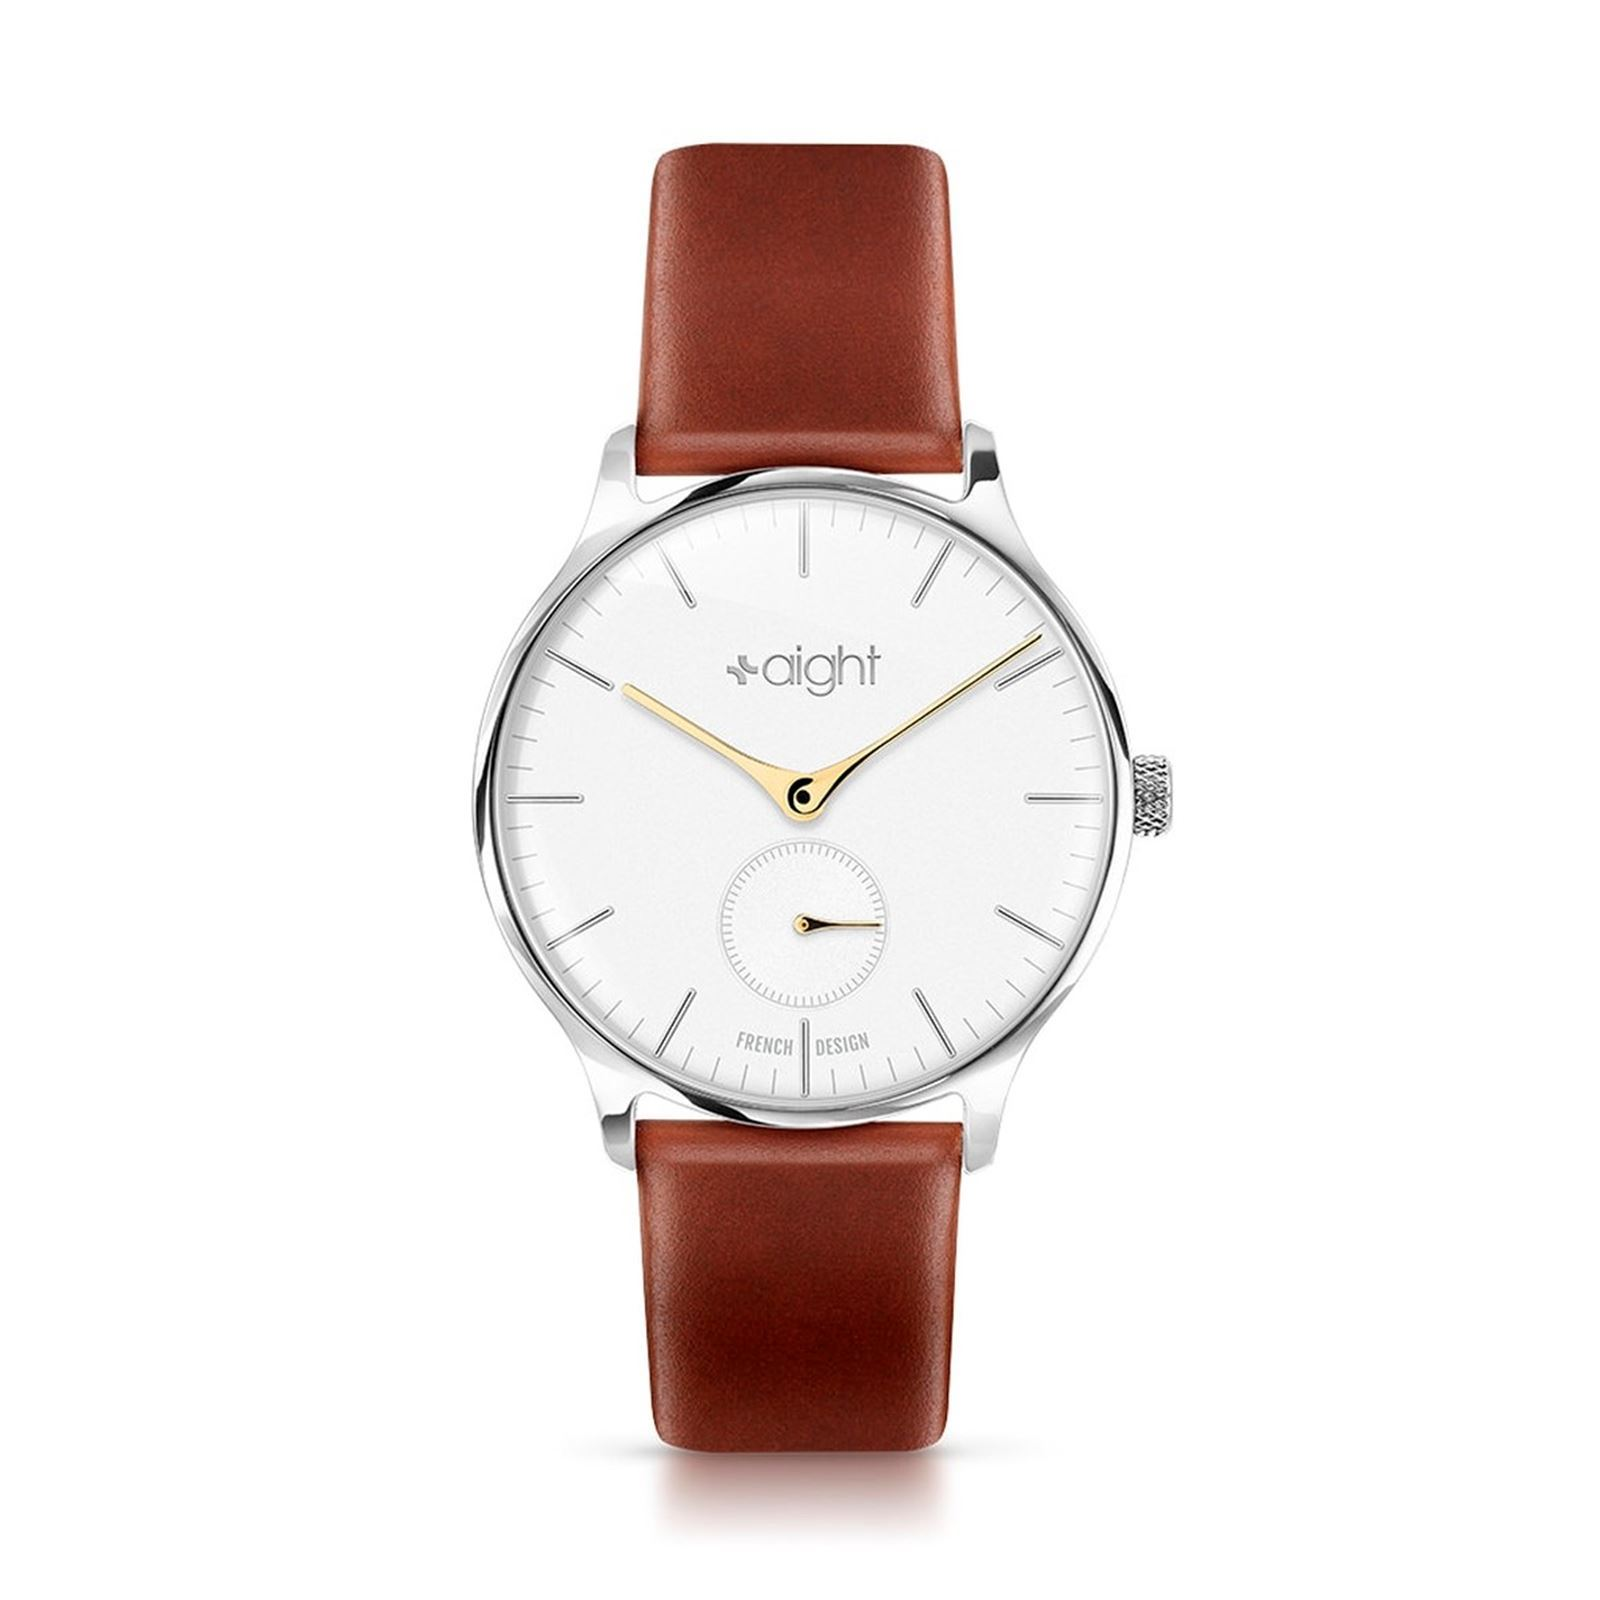 Aight Montre en cuir - marron